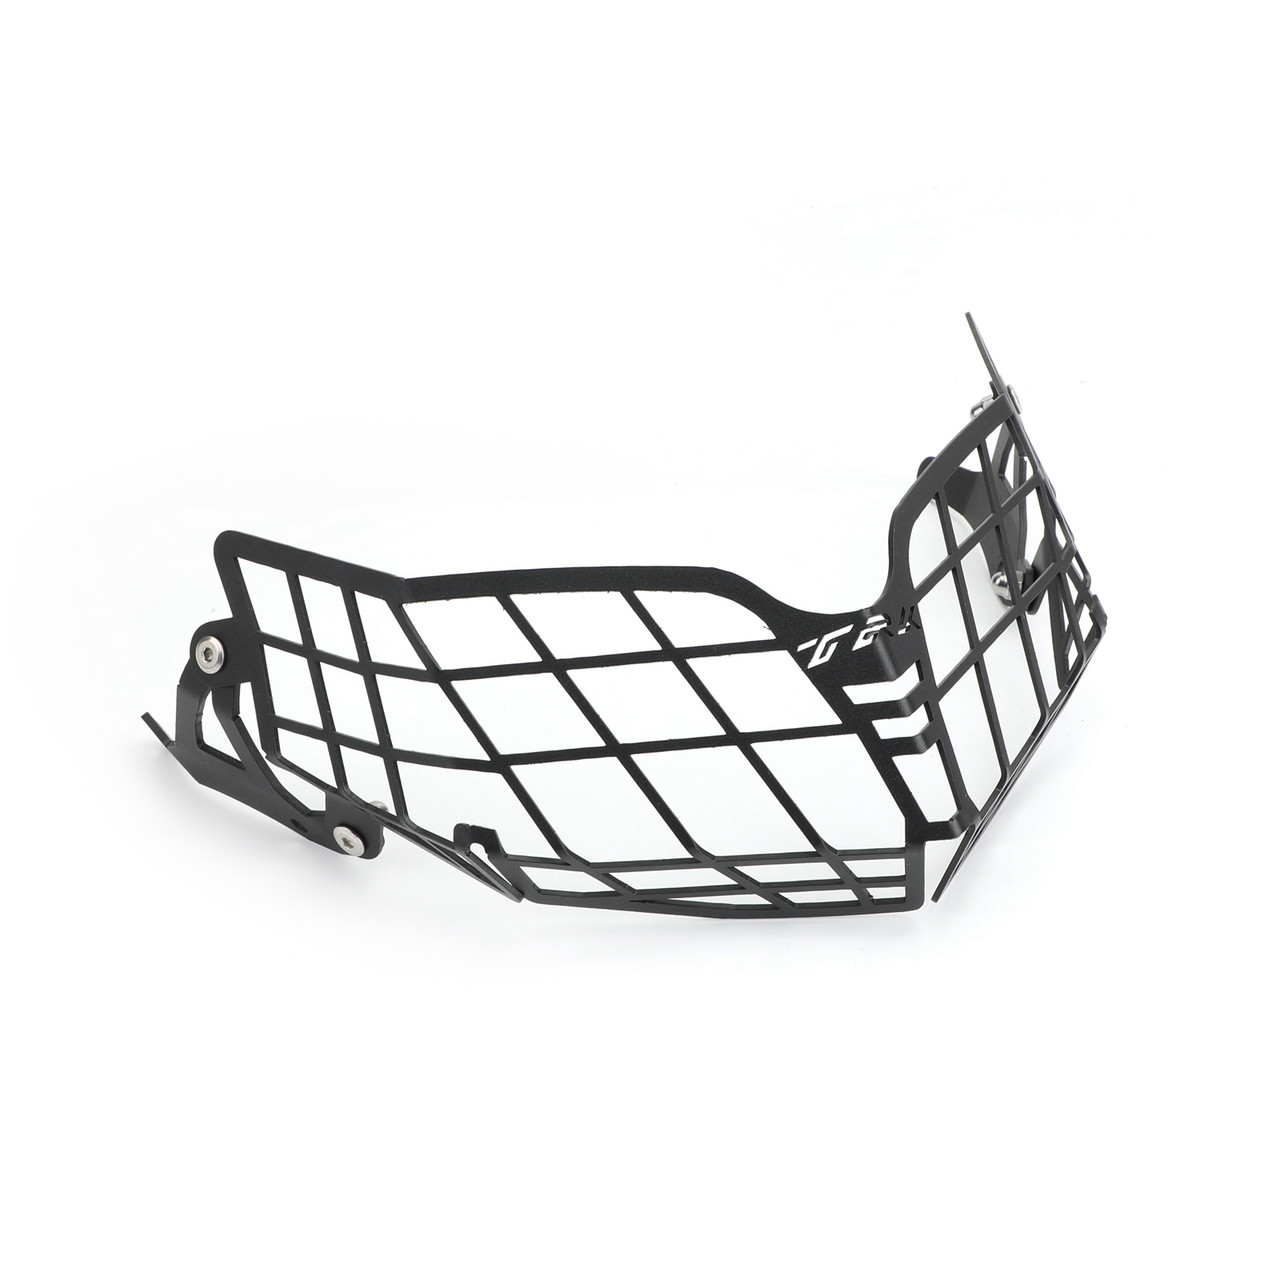 Headlight Guard Protector Grille Cover For Benelli TRK502 TRK 502 Black